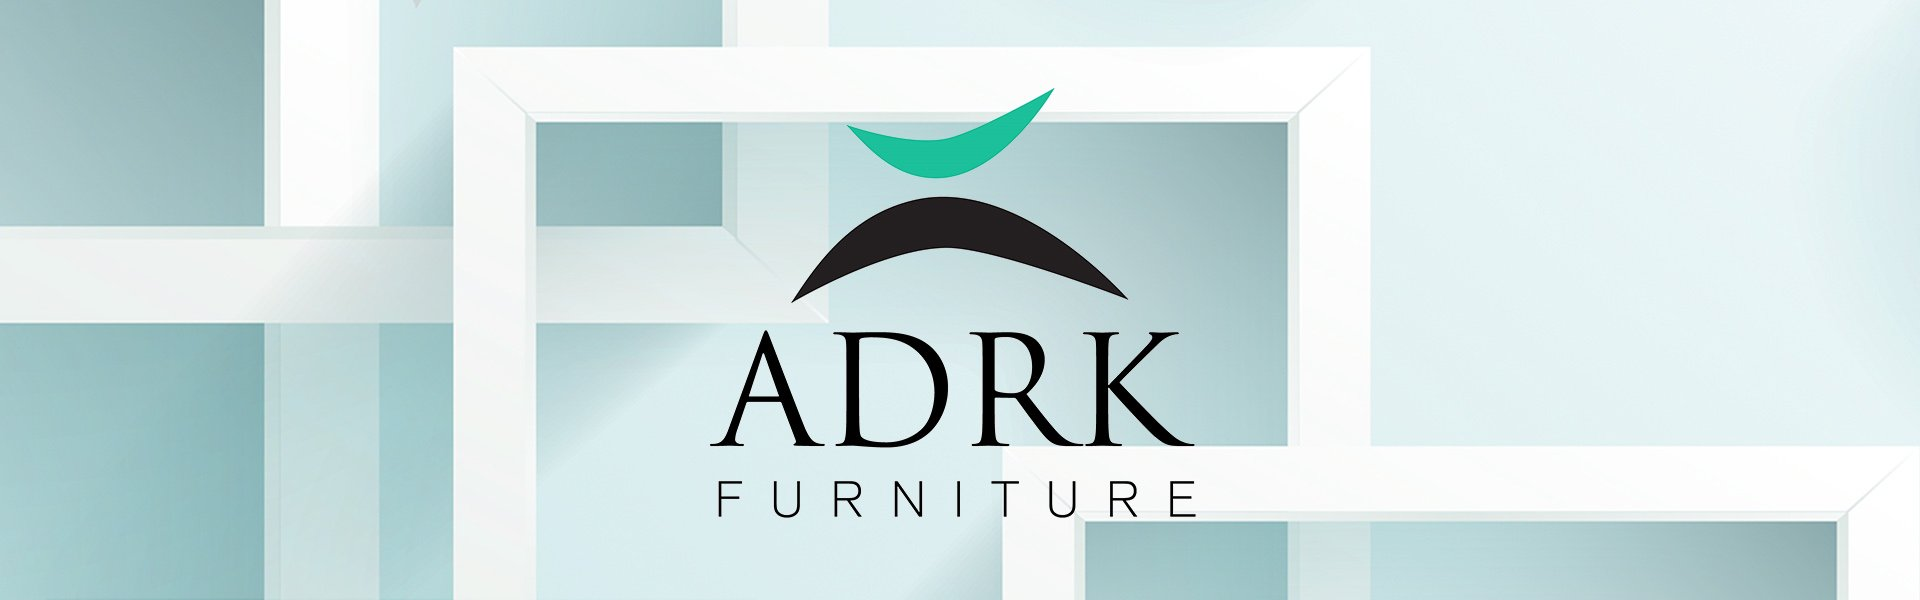 Kapp Dorrigo, trufel                             ADRK Furniture